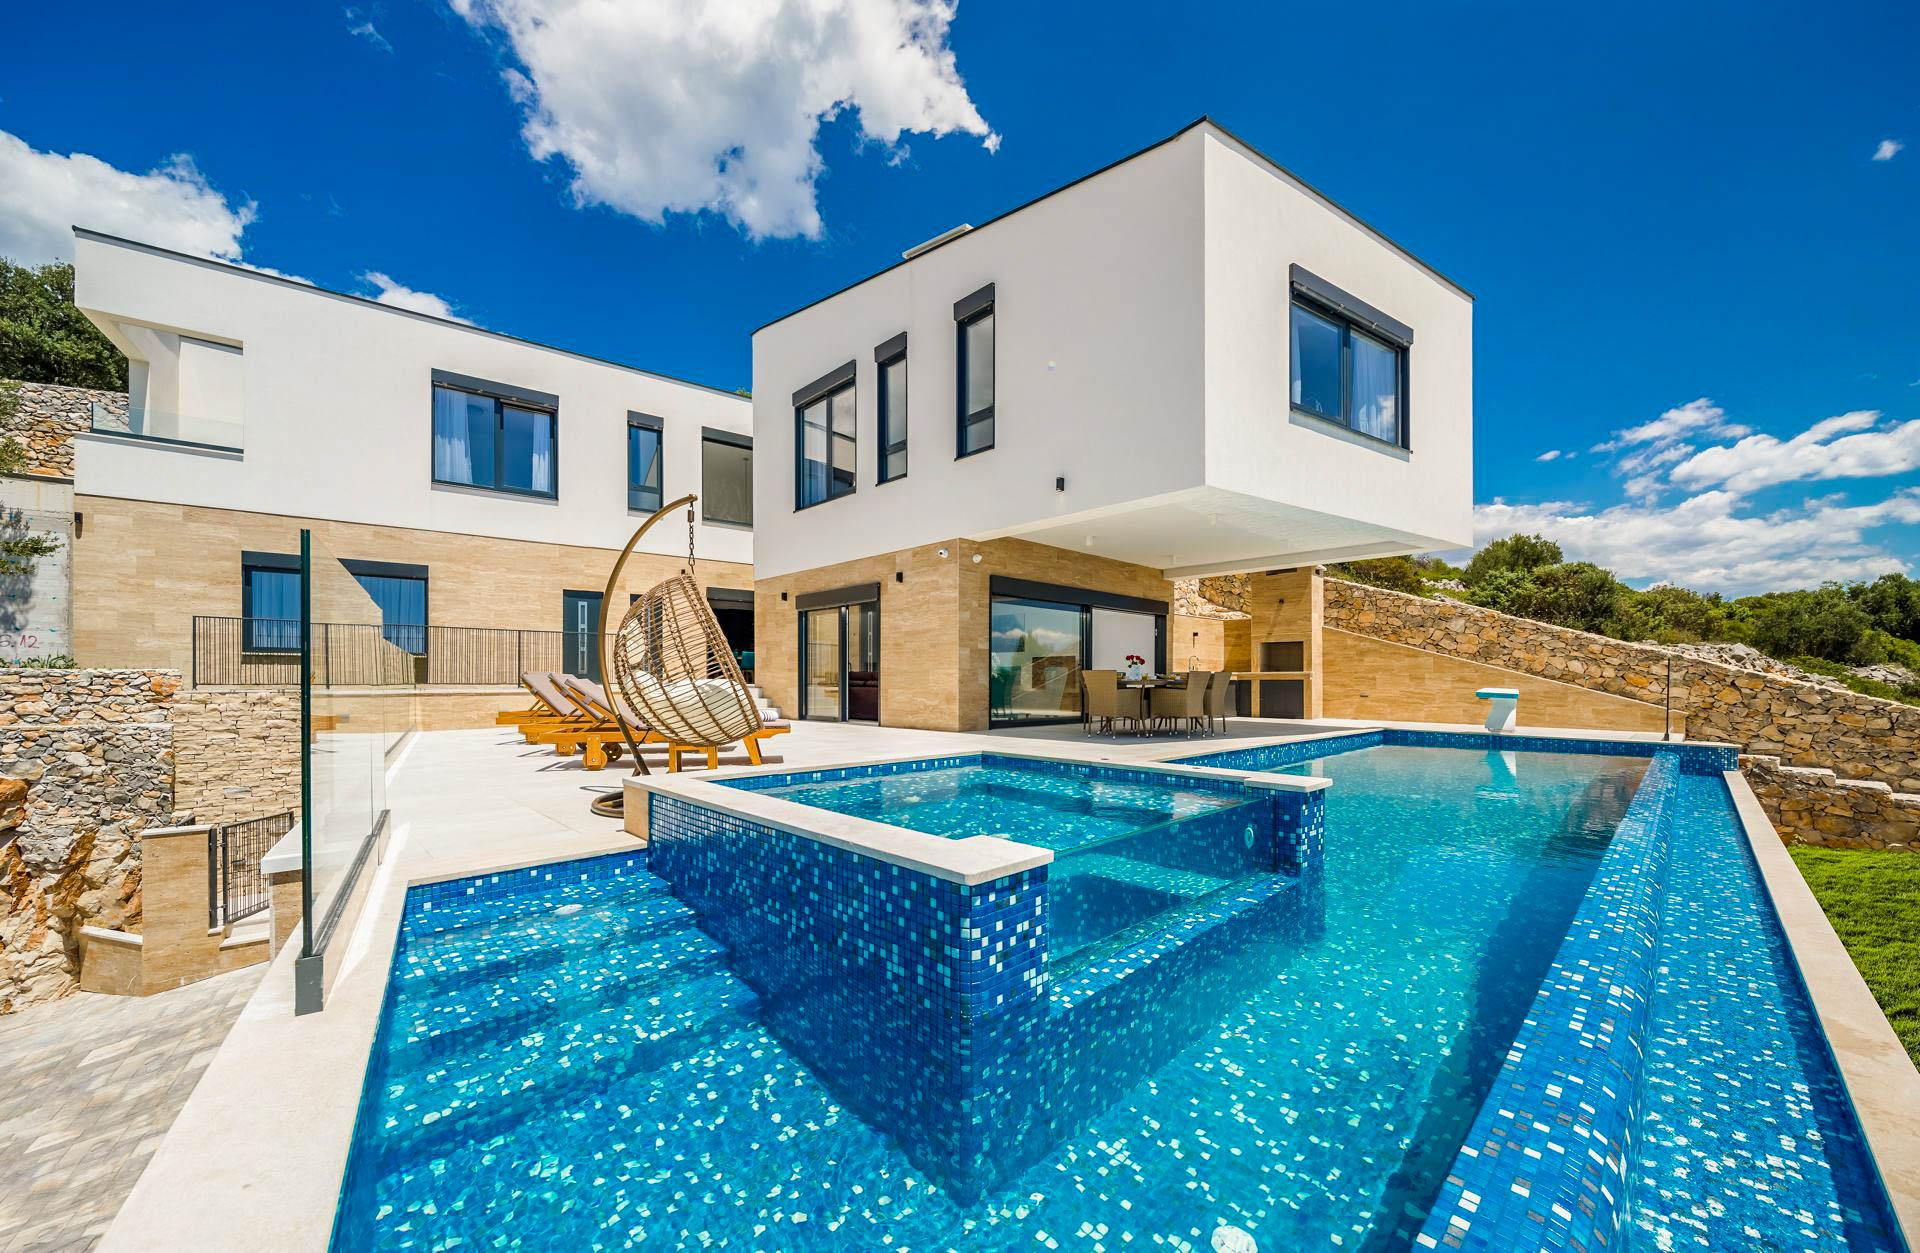 Property Image 1 - Luxurious, Contemporary Villa with Glorious Sea Views